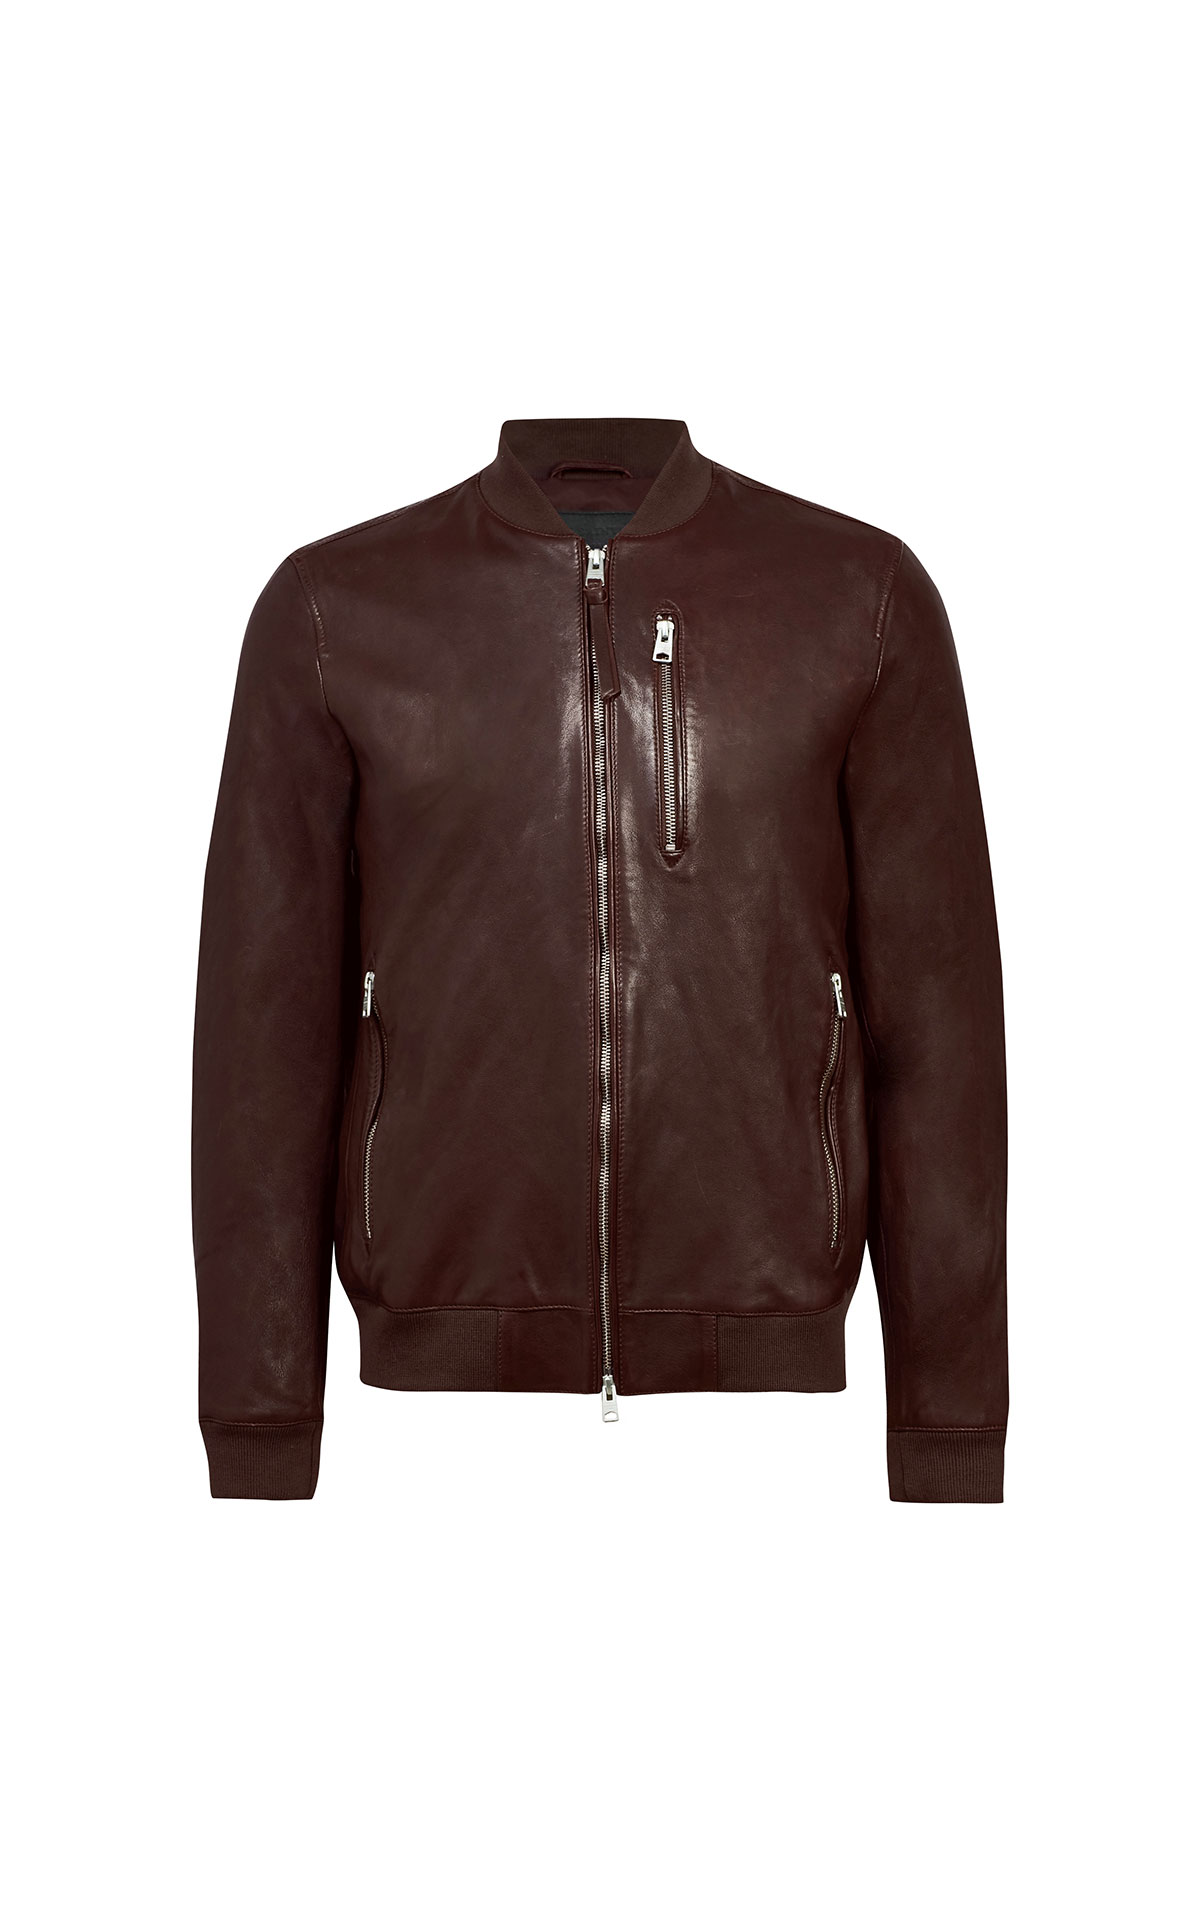 AllSaints Roundhouse biker from Bicester Village